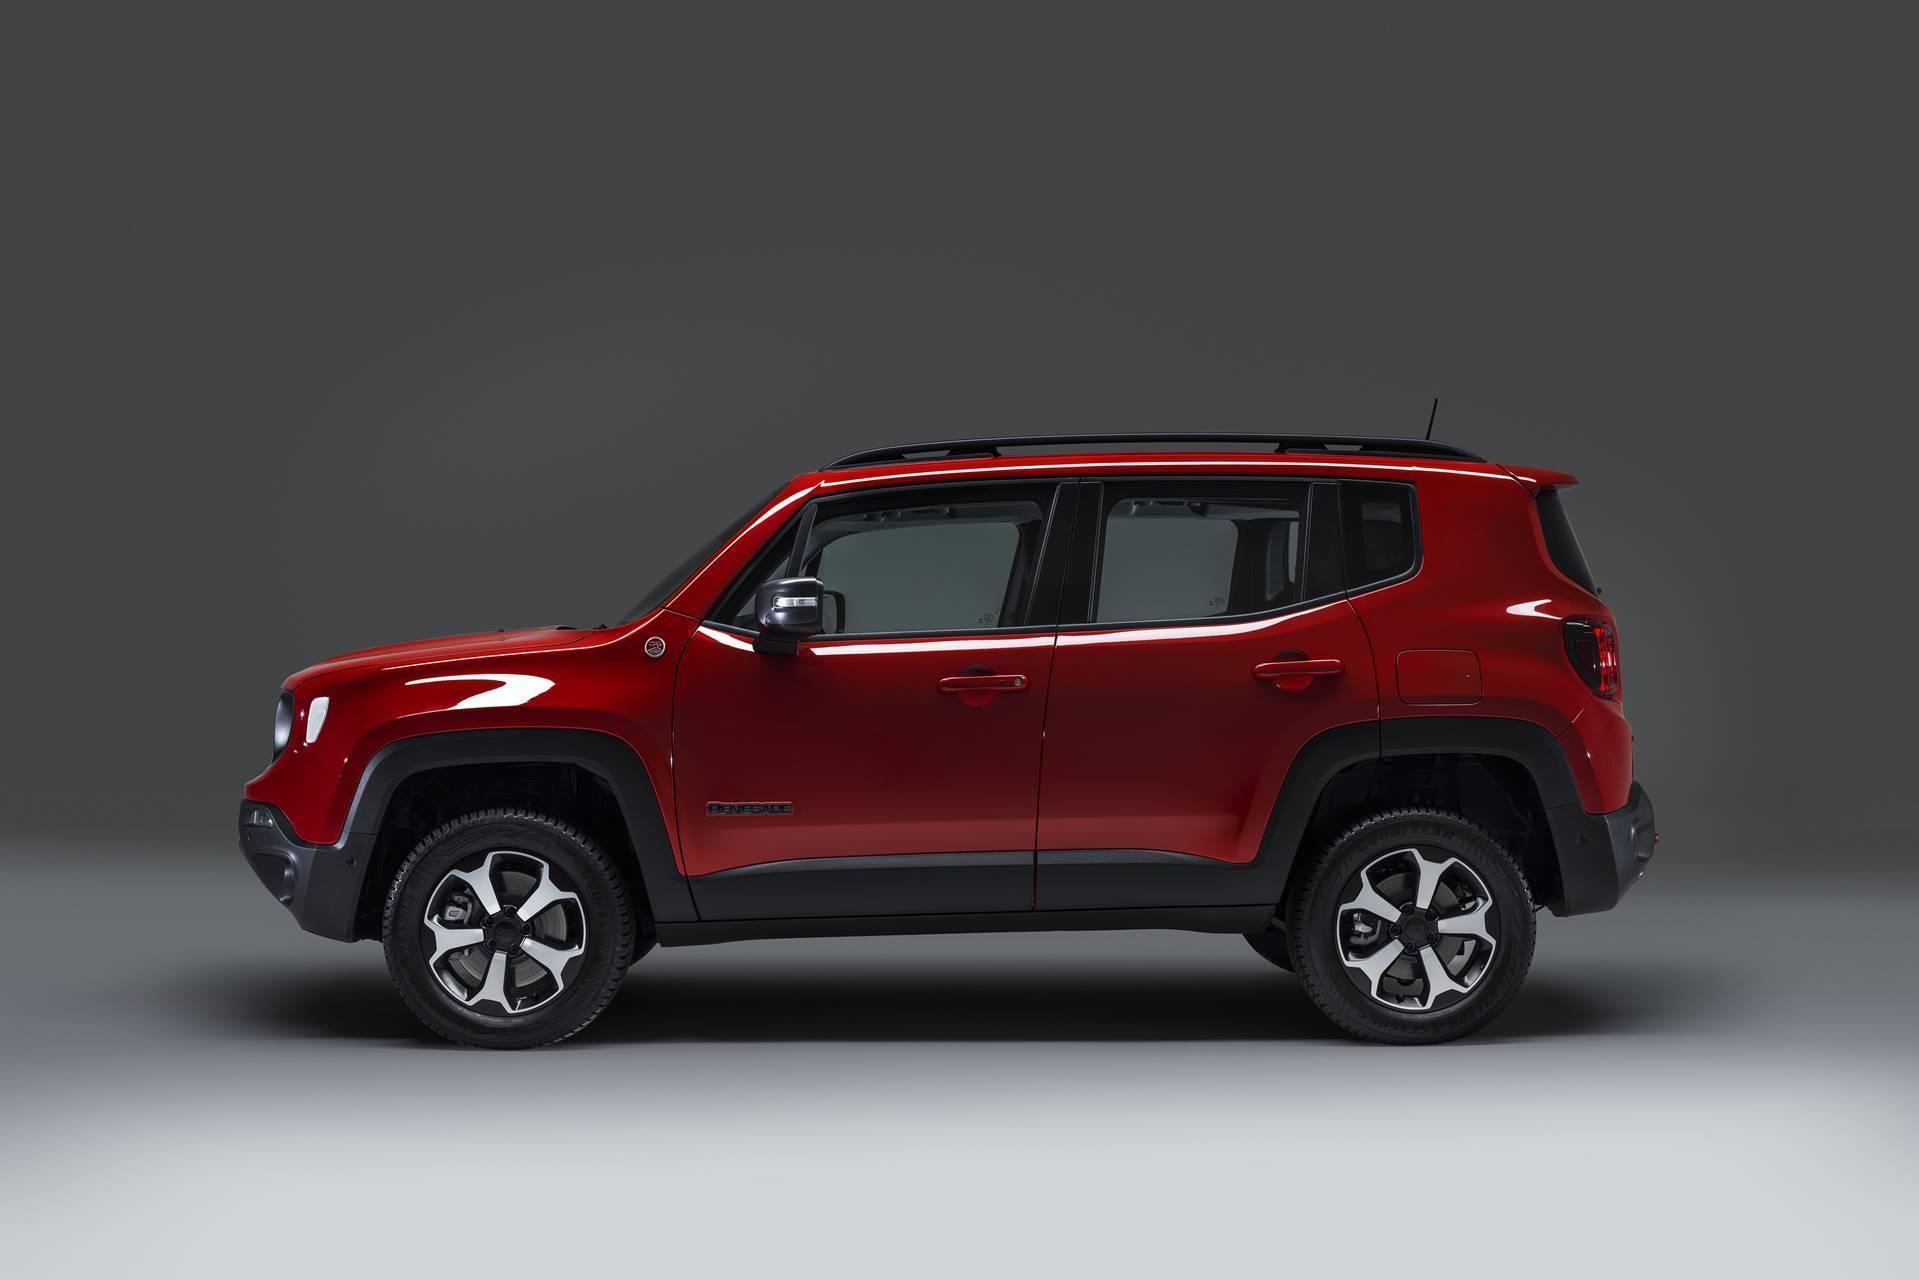 2019 Jeep Renegade PHEV